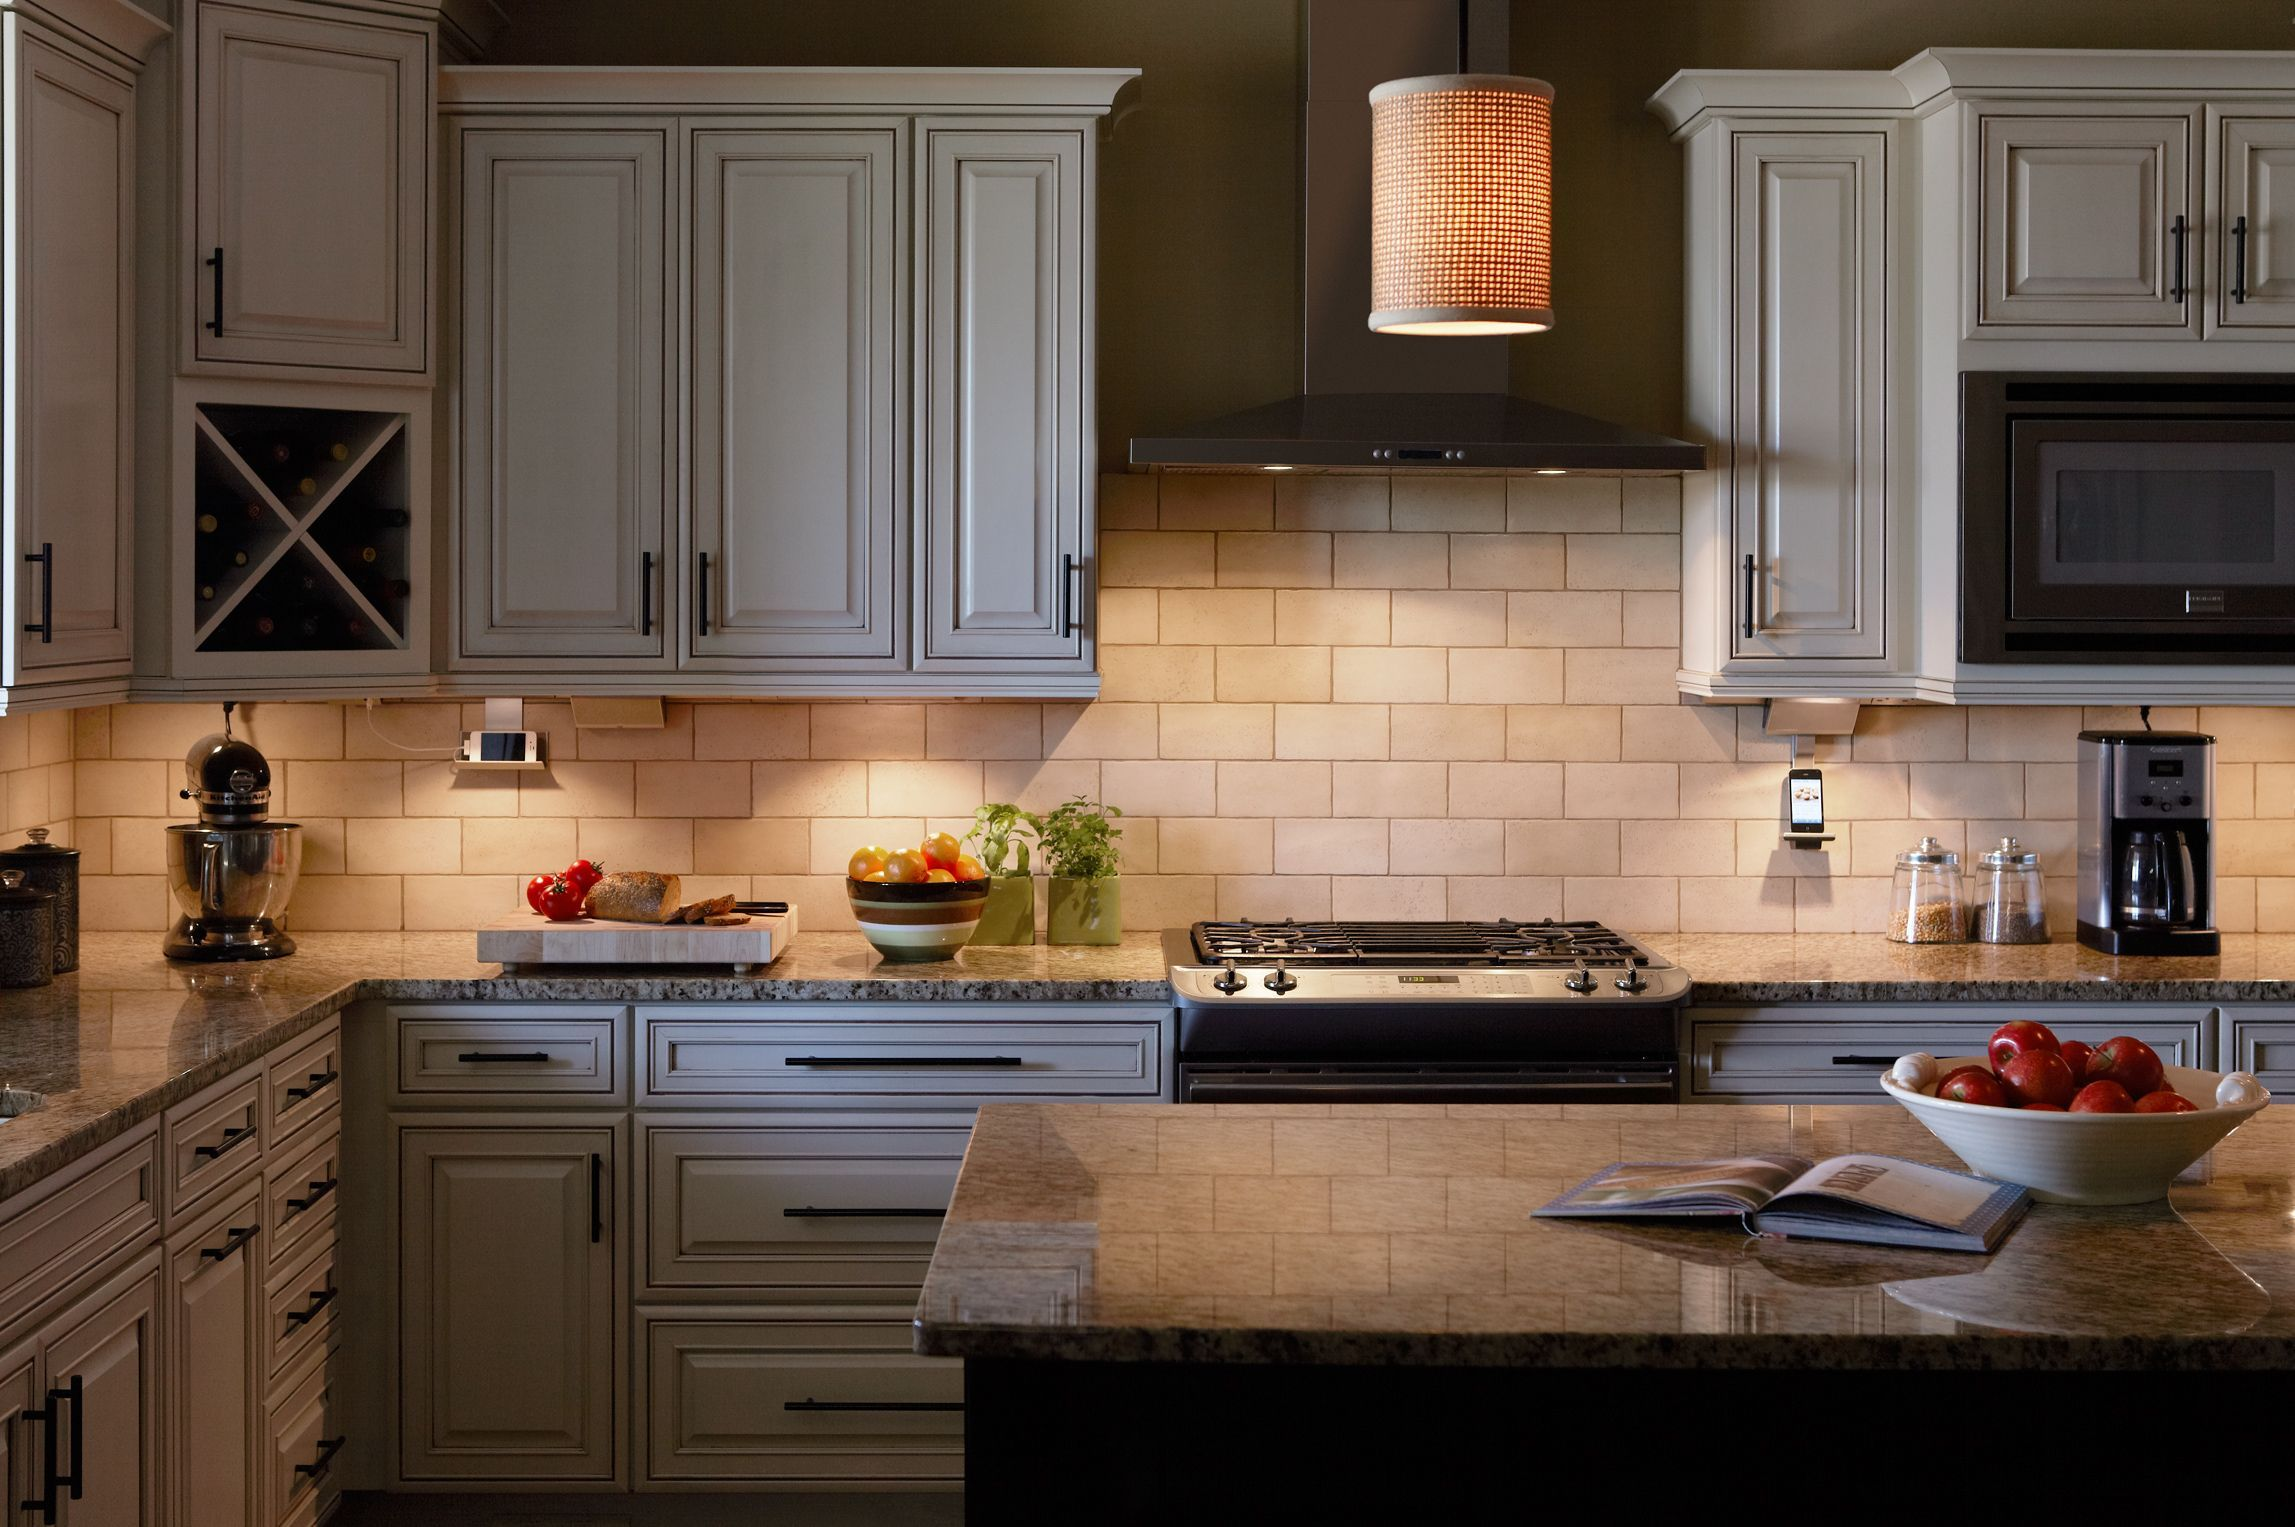 Window under kitchen cabinets  the  kitchen commandments in feng shui perspective  kitchen